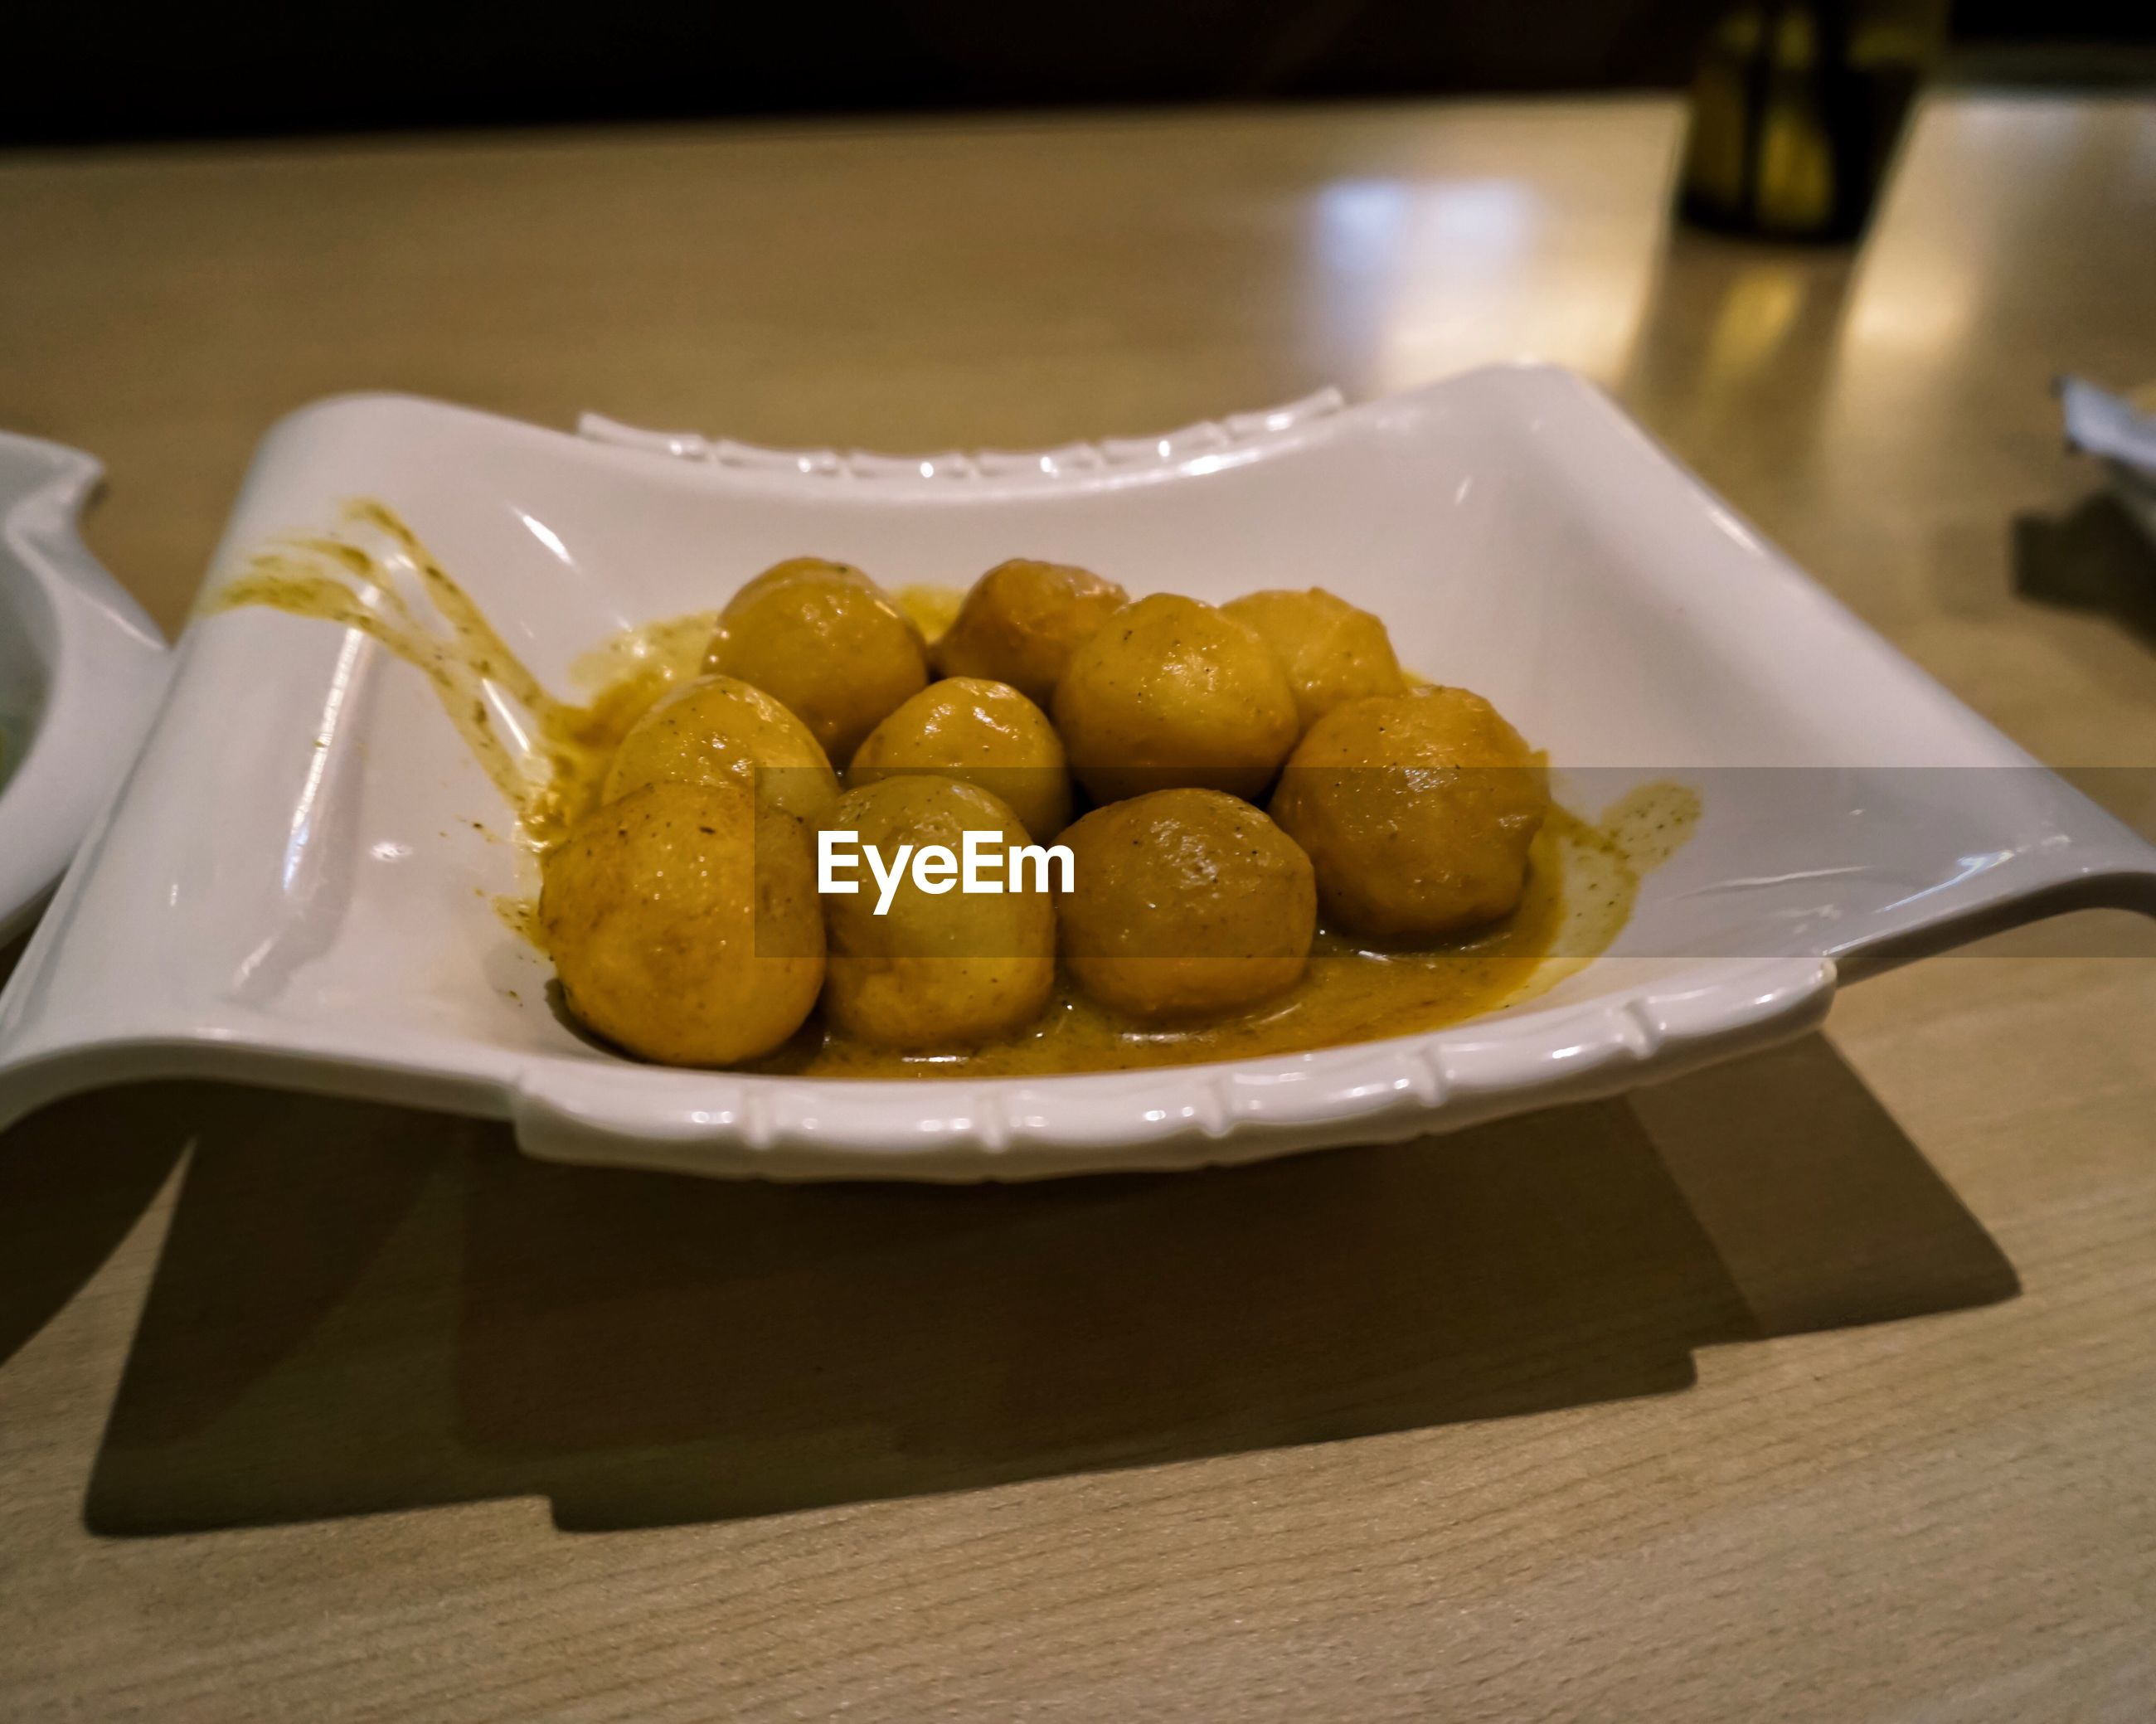 food and drink, food, indoors, freshness, table, appetizer, still life, gourmet, ready-to-eat, plate, group of objects, selective focus, tray, homemade, serving size, unhealthy eating, baking, kitchen counter, indulgence, large group of objects, meal, dessert, cooked